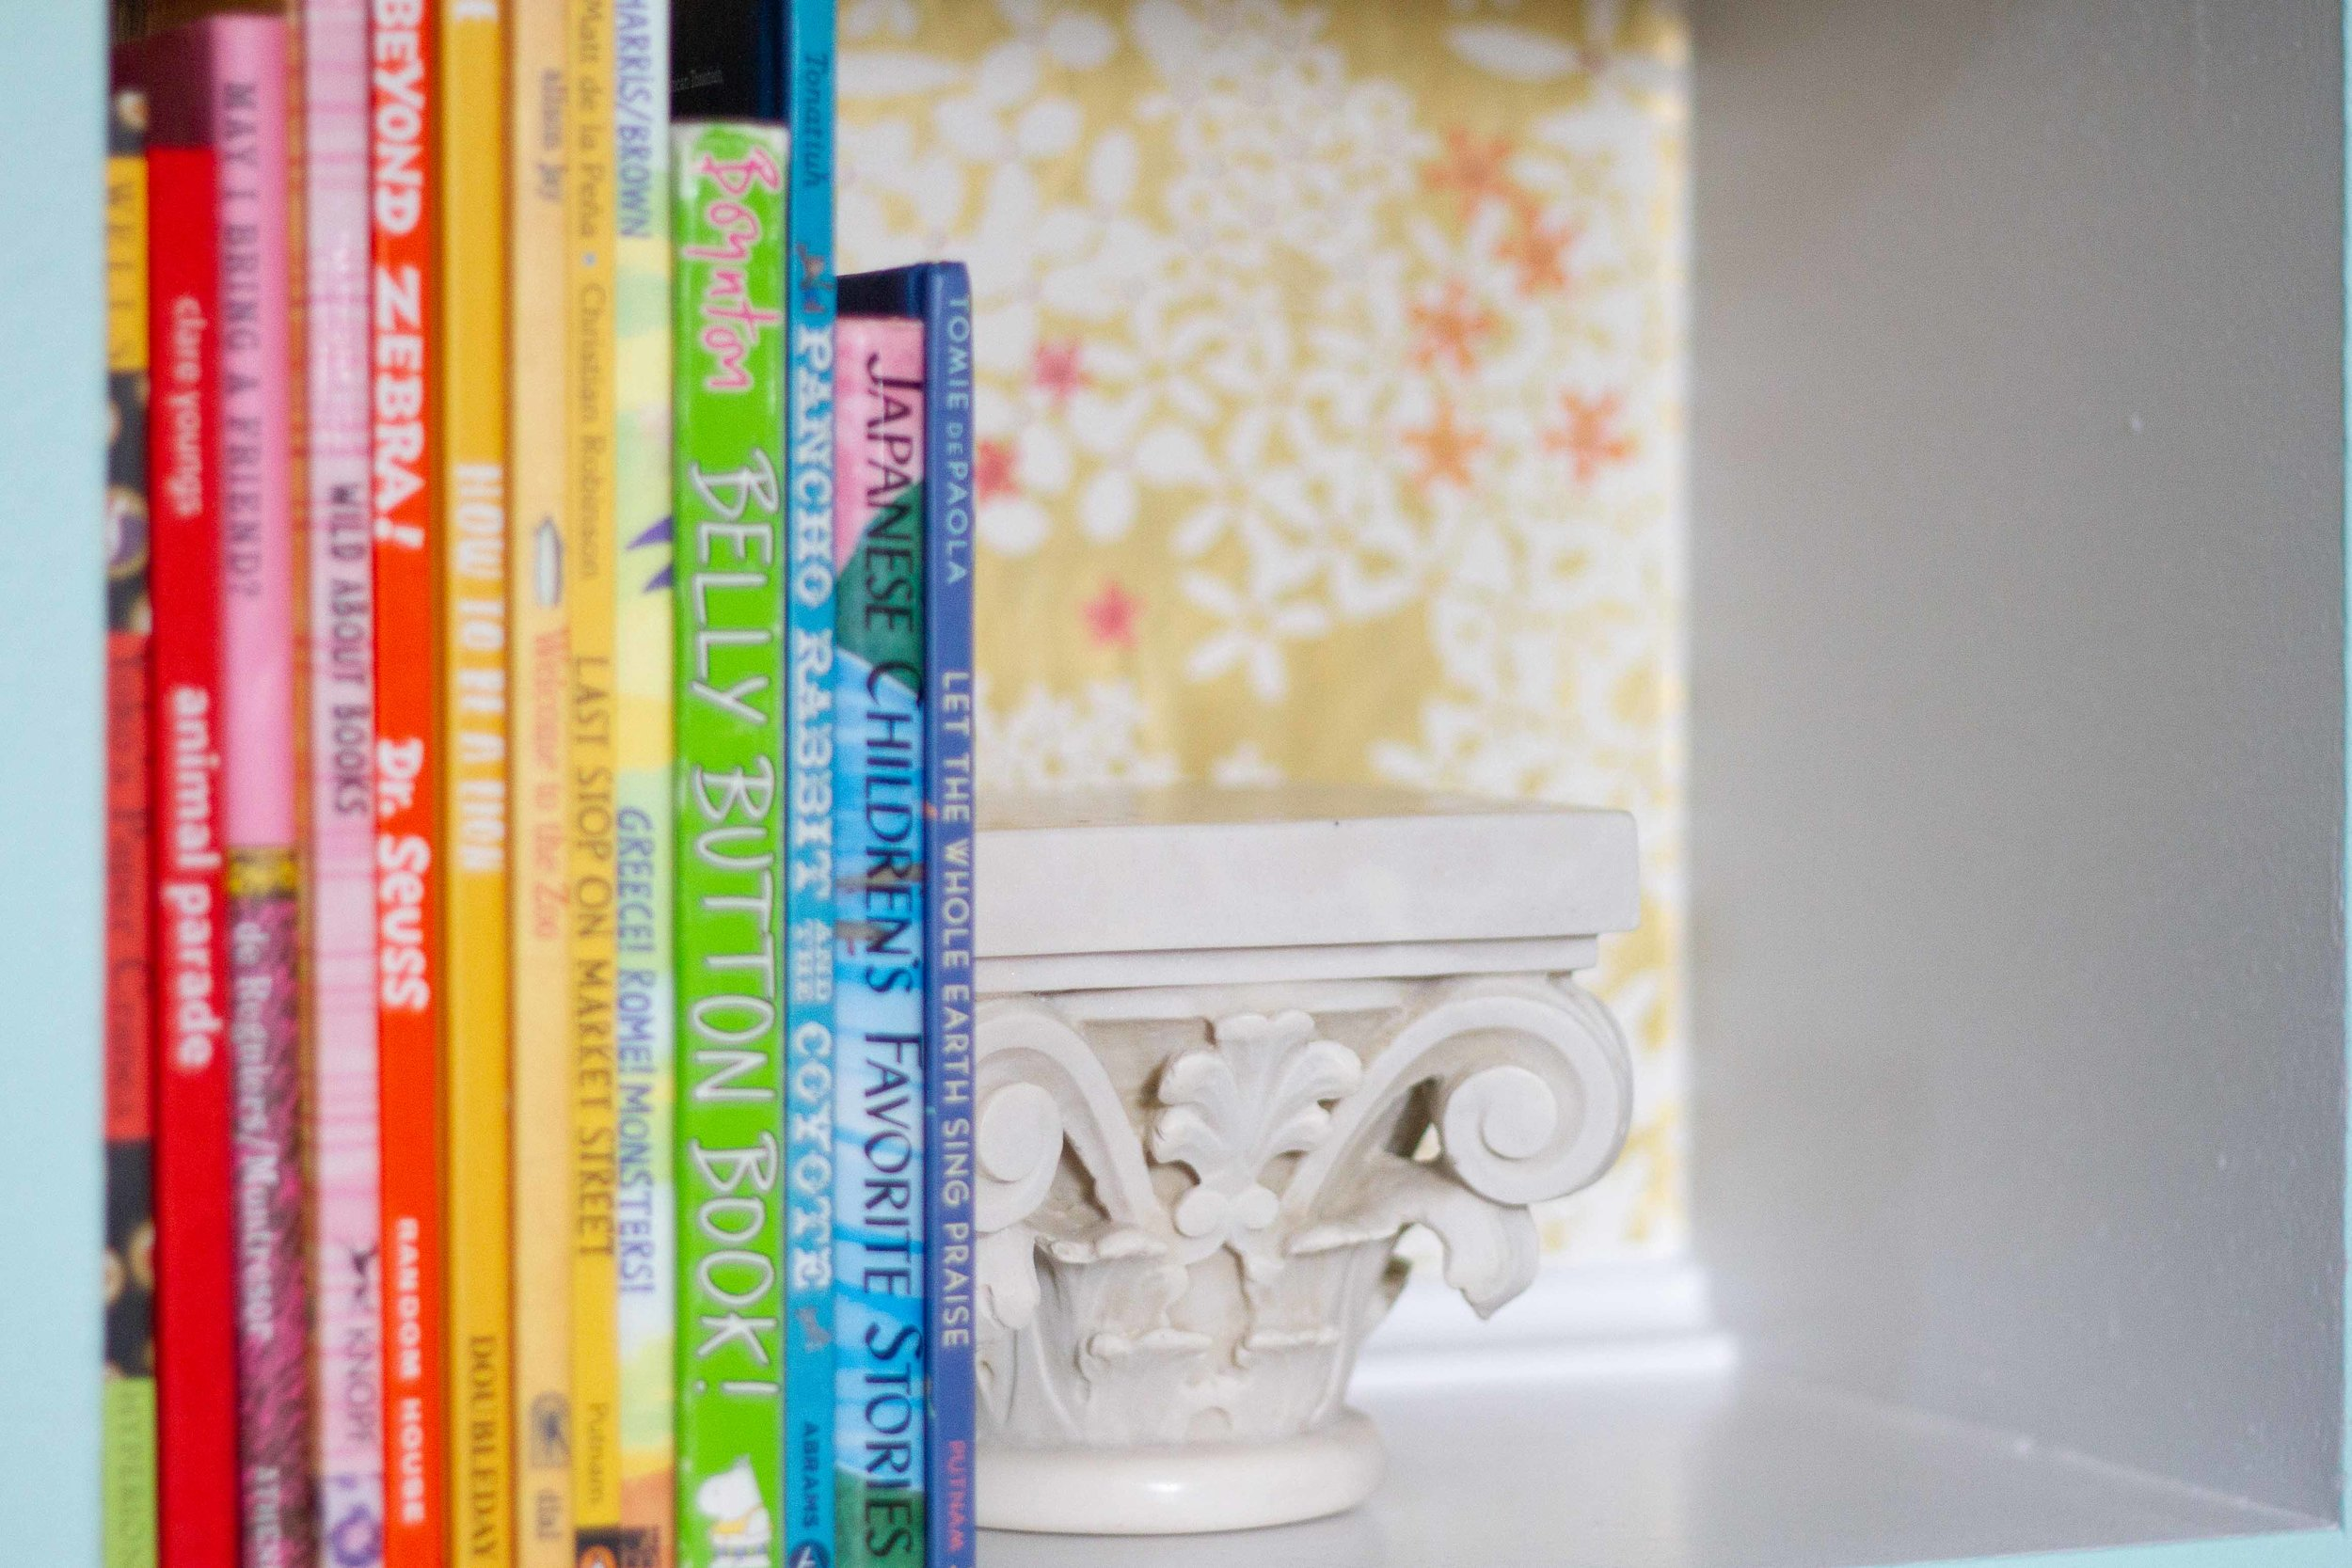 Books for our younger guests and a marble capital from Rome